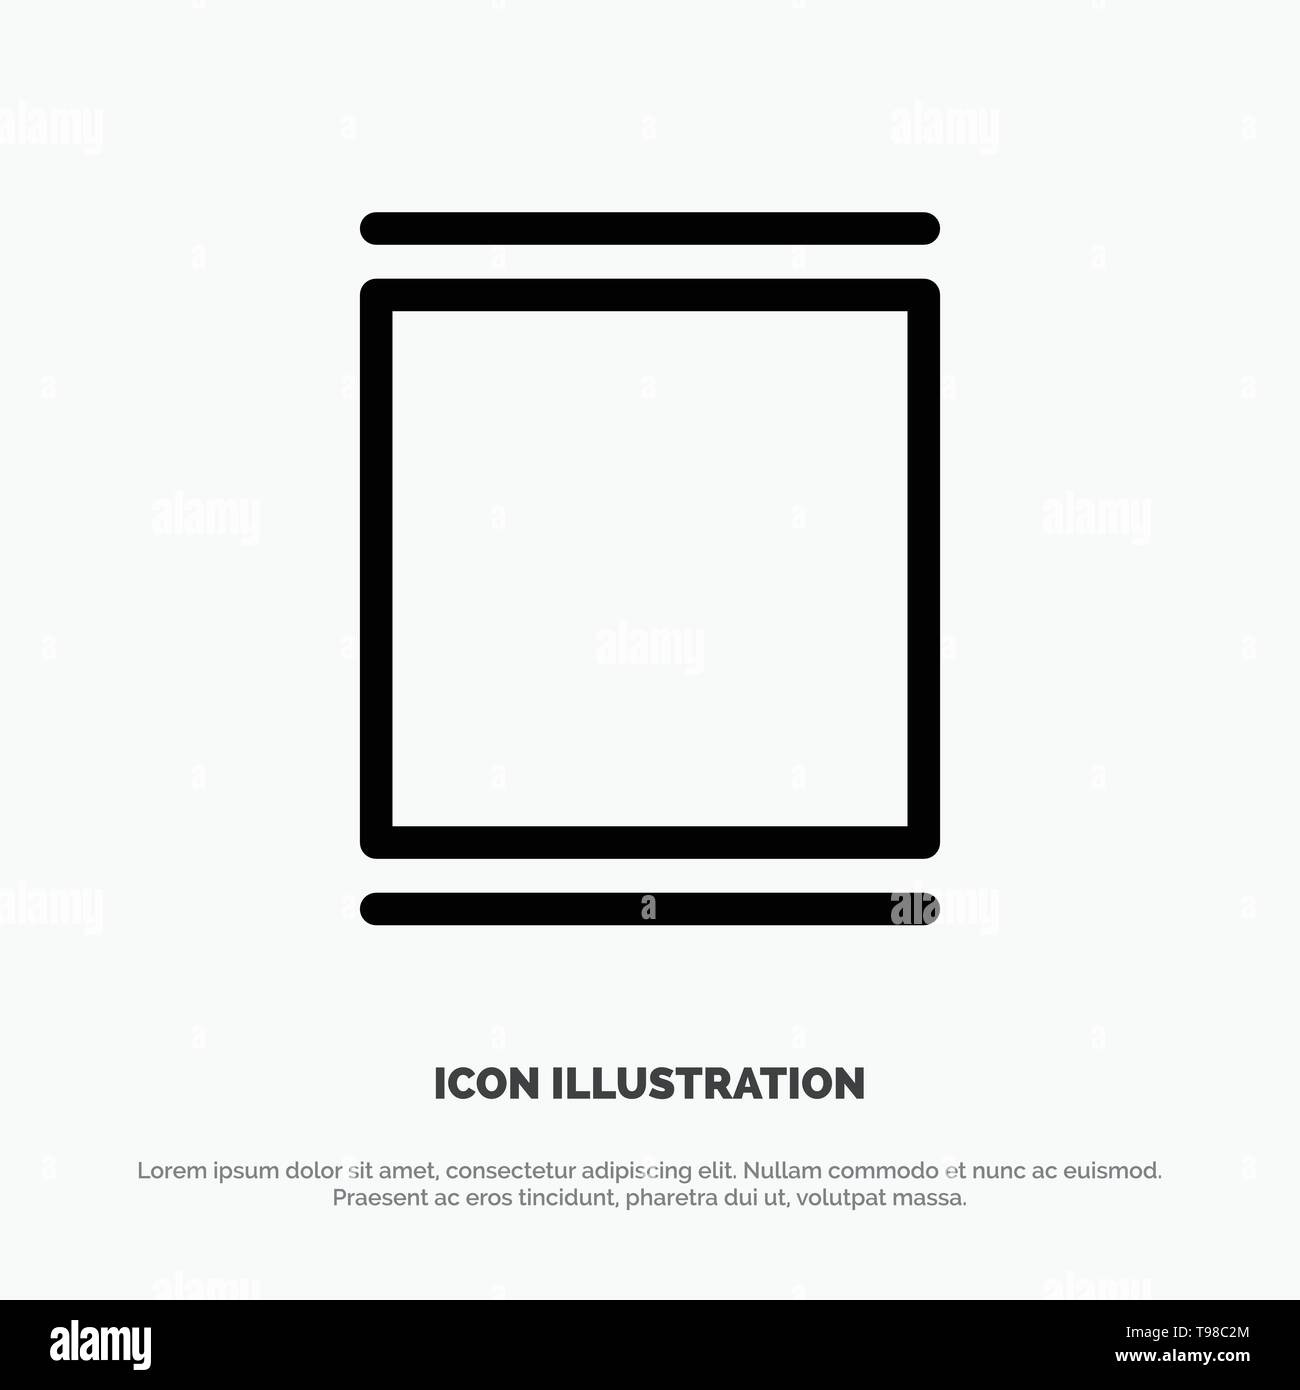 Gallery, Instagram, Sets, Timeline Line Icon Vector - Stock Image